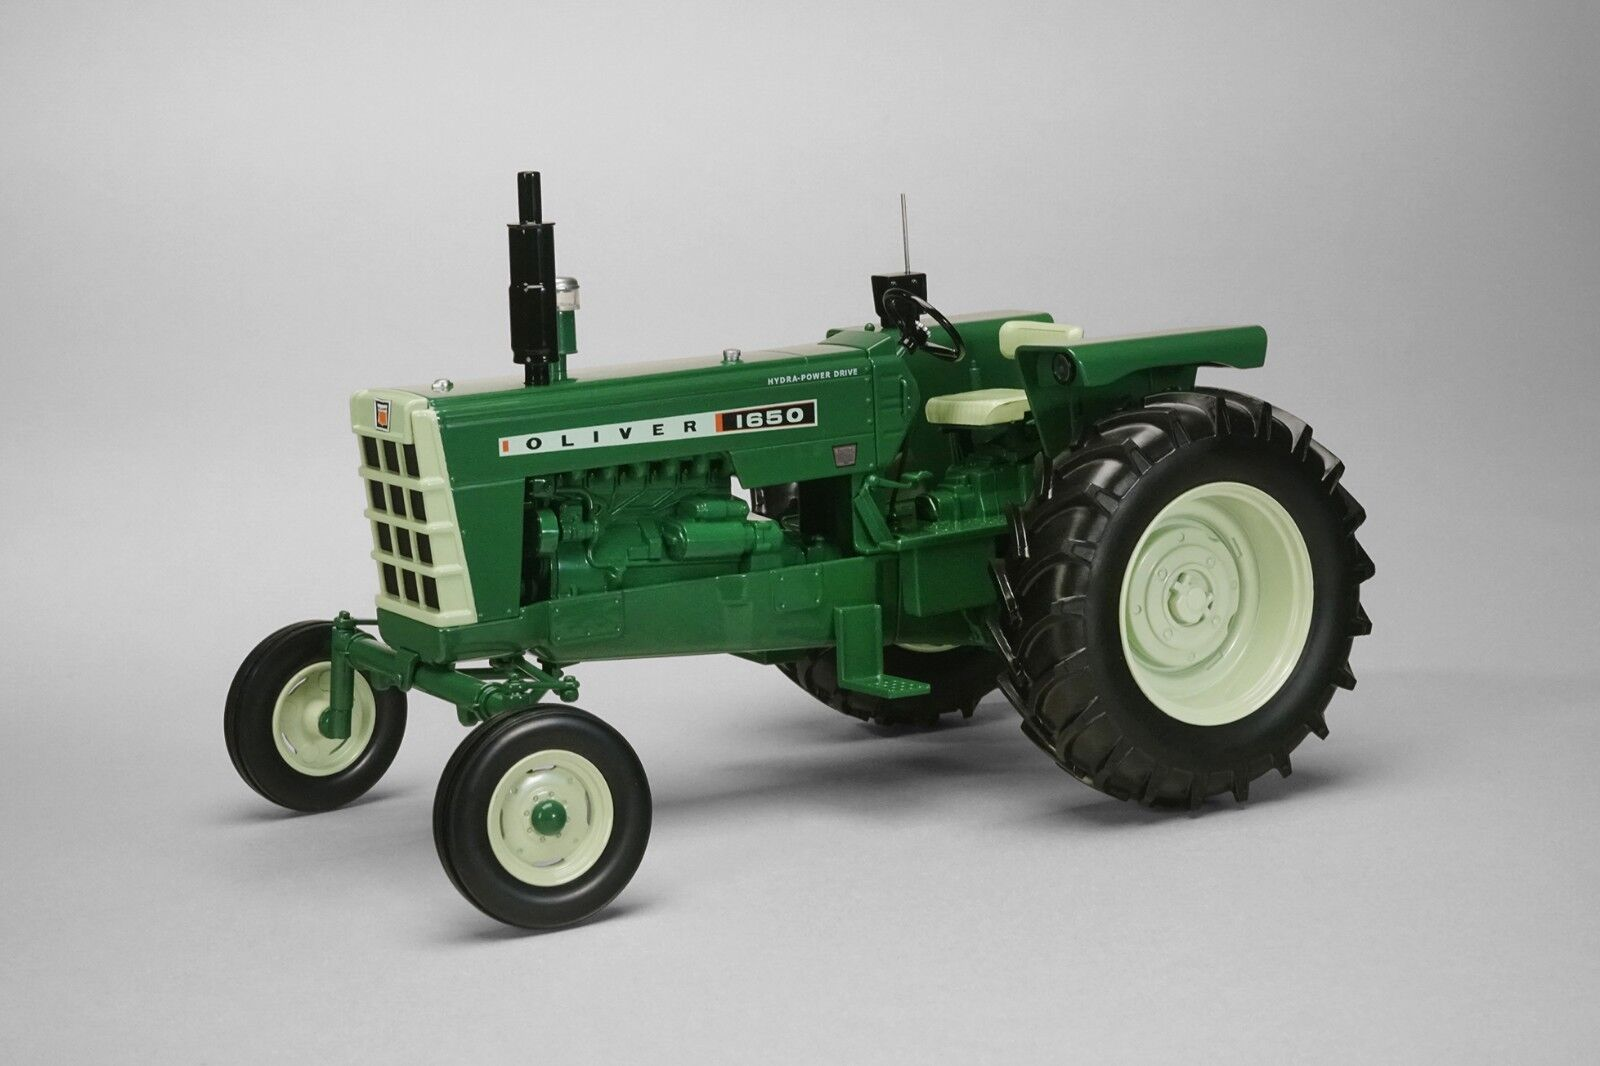 1 16 Oliver 1650 Hydra Power Drive Drive Drive w  Radio Toy Tractor. Made by SpecCast SCT655 c109f8